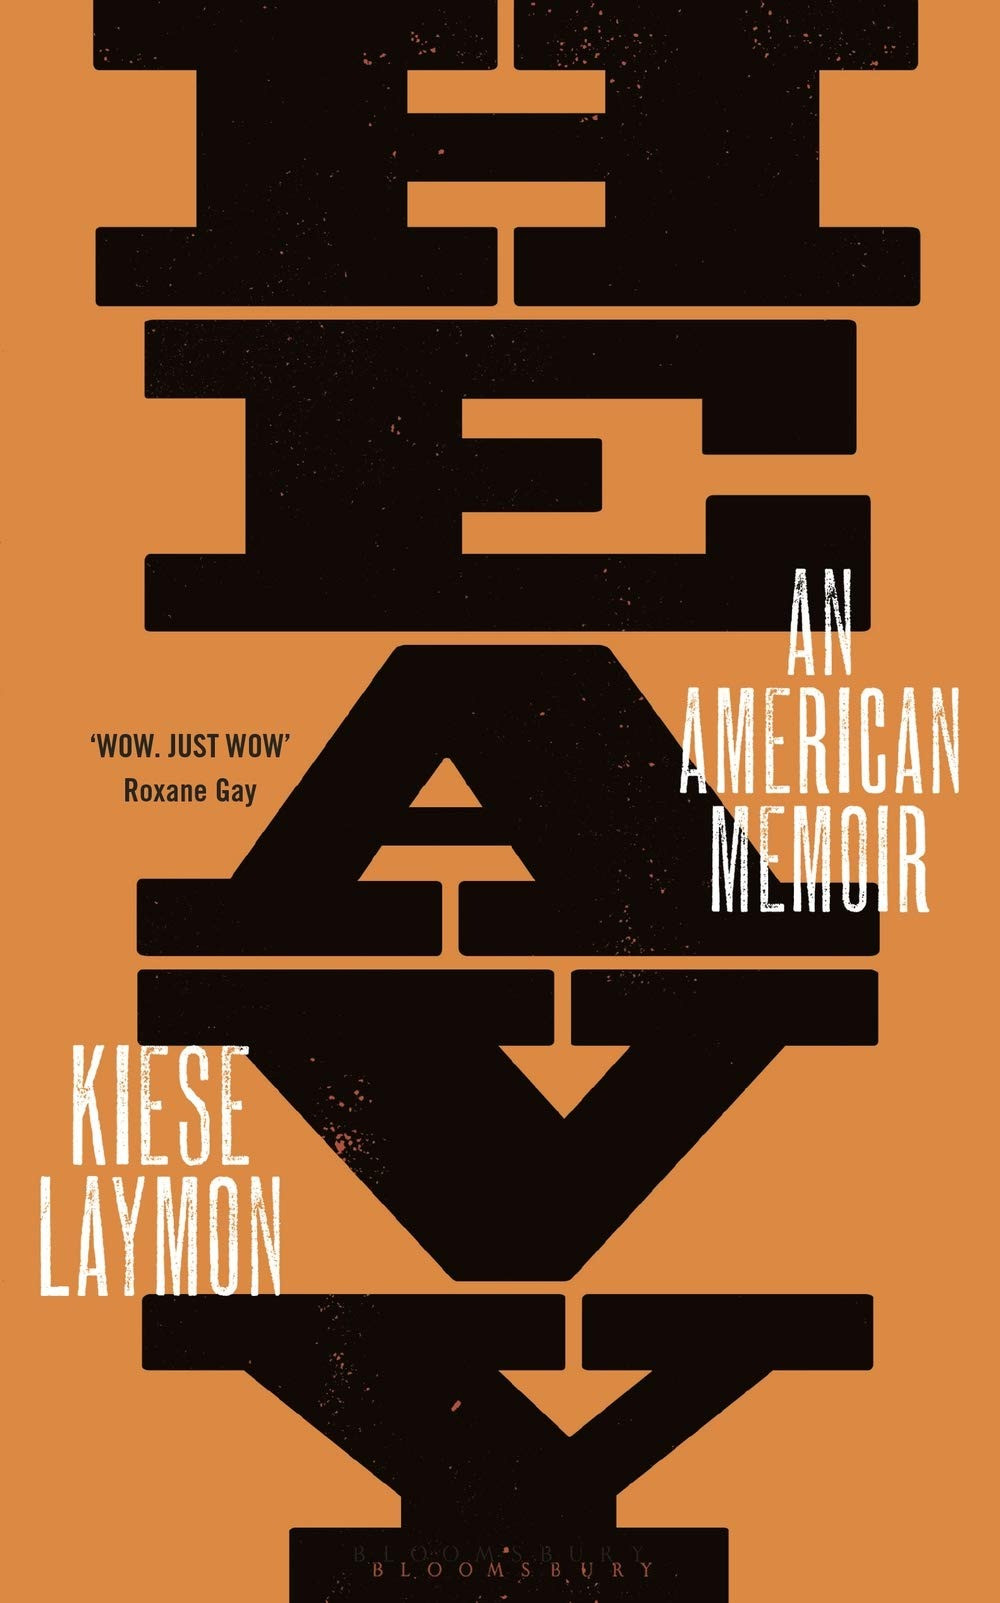 "Heavy: An American Memoir Kiese Laymon (Author). The Book Slut book reviews. thebookslut Friday debrief. *Named a Best Book of 2018 by the New York Times, Publishers Weekly, NPR, Broadly, Buzzfeed (Nonfiction), The Undefeated, Library Journal (Biography/Memoirs), The Washington Post (Nonfiction), Southern Living (Southern), Entertainment Weekly, and The New York Times Critics* In this powerful, provocative, and universally lauded memoir--winner of the Andrew Carnegie Medal and finalist for the Kirkus Prize--genre-bending essayist and novelist Kiese Laymon ""provocatively meditates on his trauma growing up as a black man, and in turn crafts an essential polemic against American moral rot"" (Entertainment Weekly). In Heavy, Laymon writes eloquently and honestly about growing up a hard-headed black son to a complicated and brilliant black mother in Jackson, Mississippi. From his early experiences of sexual violence, to his suspension from college, to time in New York as a college professor, Laymon charts his complex relationship with his mother, grandmother, anorexia, obesity, sex, writing, and ultimately gambling. Heavy is a ""gorgeous, gutting...generous"" (The New York Times) memoir that combines personal stories with piercing intellect to reflect both on the strife of American society and on Laymon's experiences with abuse. By attempting to name secrets and lies he and his mother spent a lifetime avoiding, he asks us to confront the terrifying possibility that few in this nation actually know how to responsibly love, and even fewer want to live under the weight of actually becoming free. ""A book for people who appreciated Roxane Gay's memoir Hunger"" (Milwaukee Journal Sentinel), Heavy is defiant yet vulnerable, an insightful, often comical exploration of weight, identity, art, friendship, and family through years of haunting implosions and long reverberations. ""You won't be able to put this memoir] down...It is packed with reminders of how black dreams get skewed and deferred, yet are also pregnant with the possibility that a kind of redemption may lie in intimate grappling with black realities"" (The Atlantic). Product Details Price $16.00  $14.72 Publisher Scribner Book Company Publish Date March 05, 2019 Pages 256 Dimensions 5.4 X 0.6 X 8.4 inches 